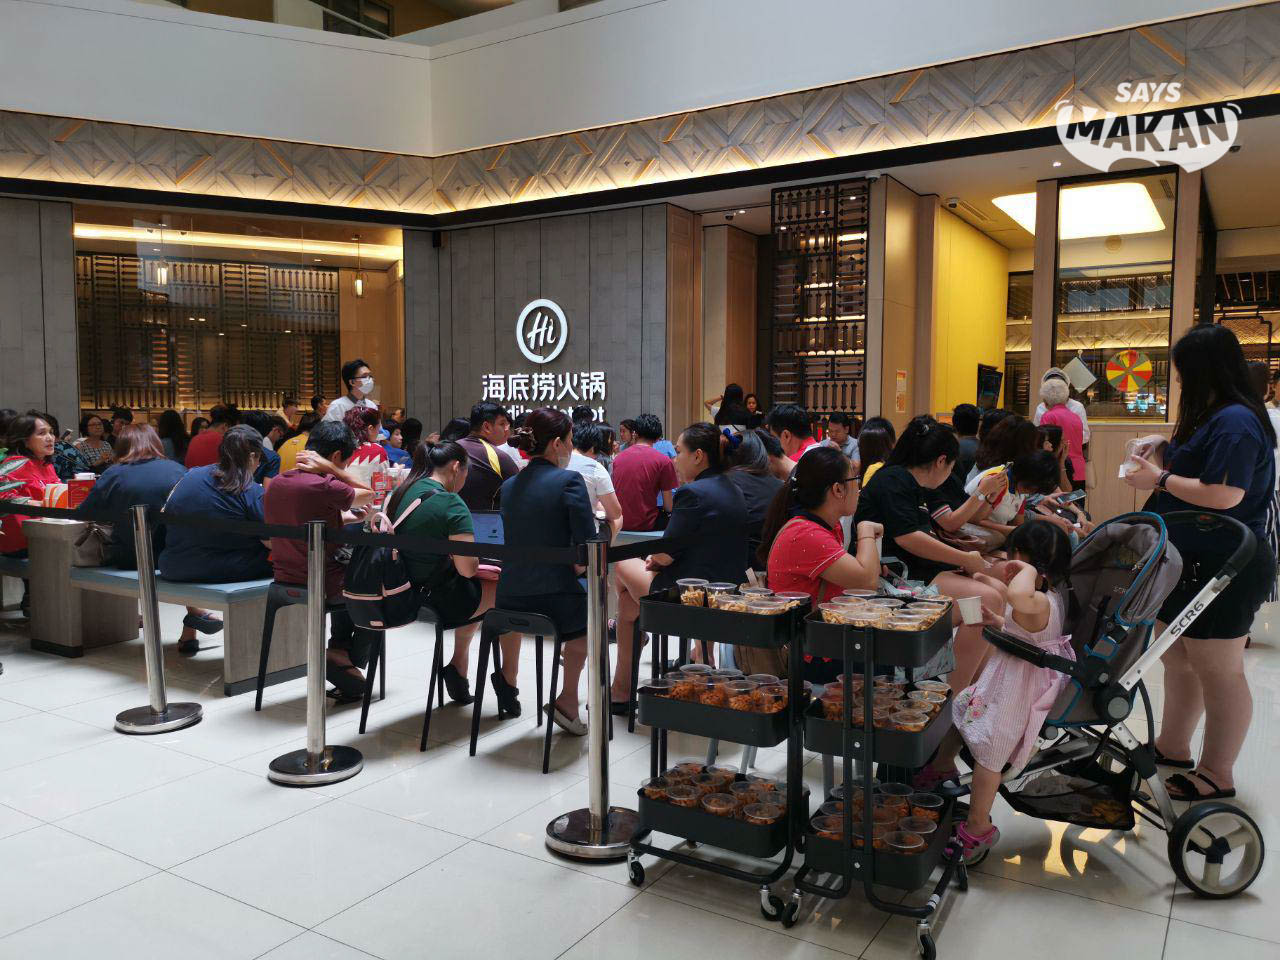 The amount of people waiting to dine at Haidilao Hot Pot, Sunway Pyramid on a Friday afternoon.